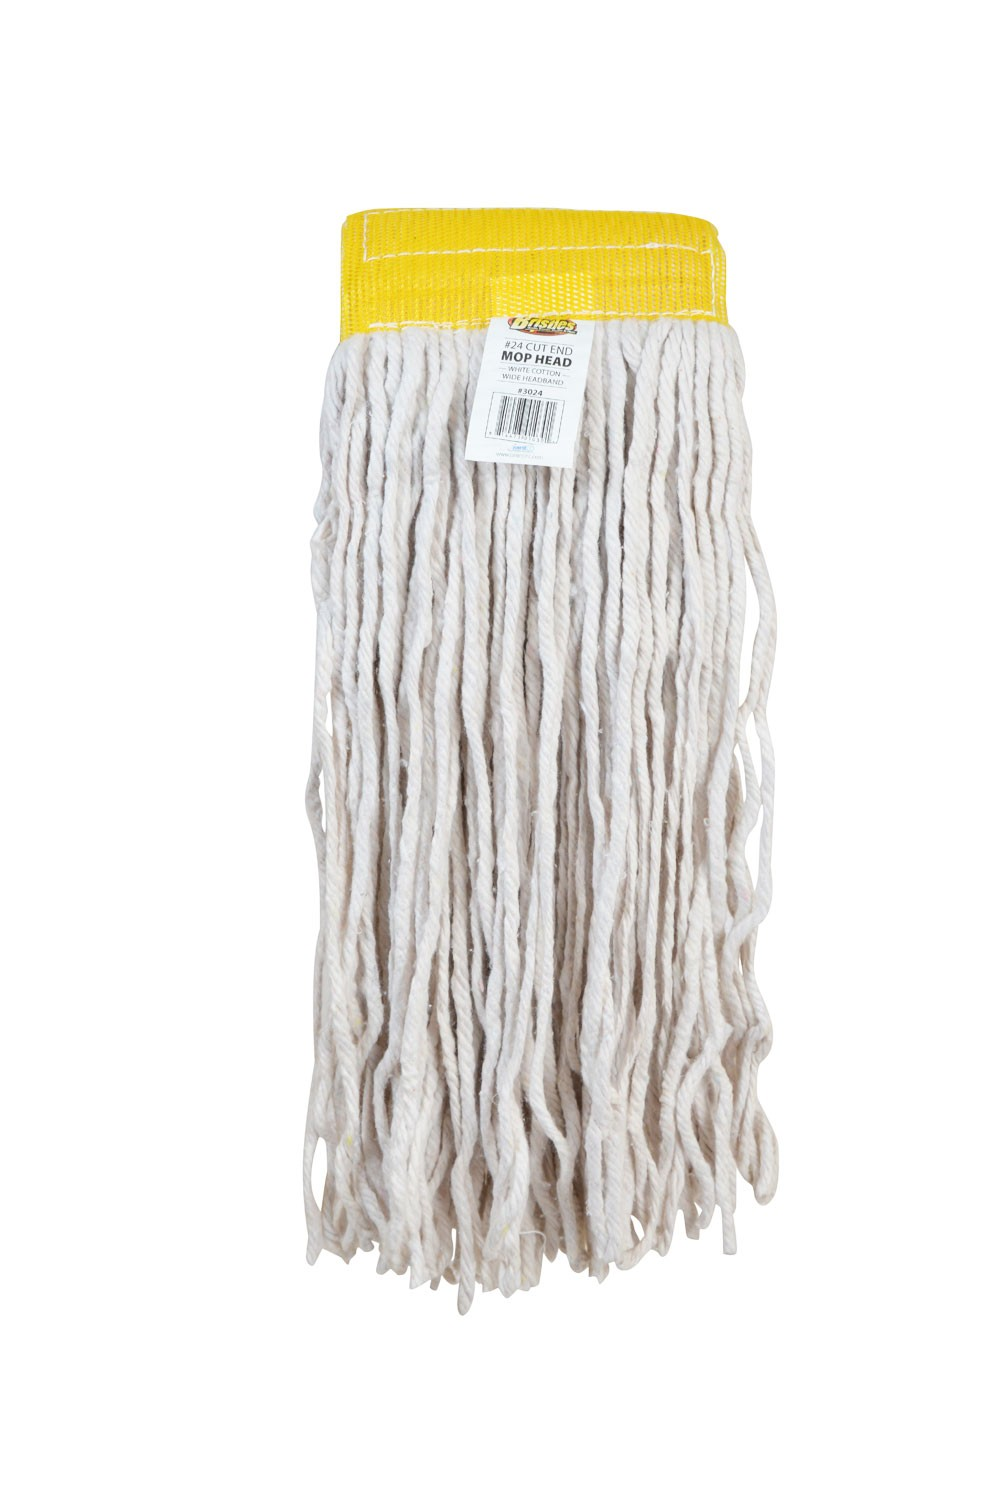 #32 4-ply Cotton Mop Head (12/cs)